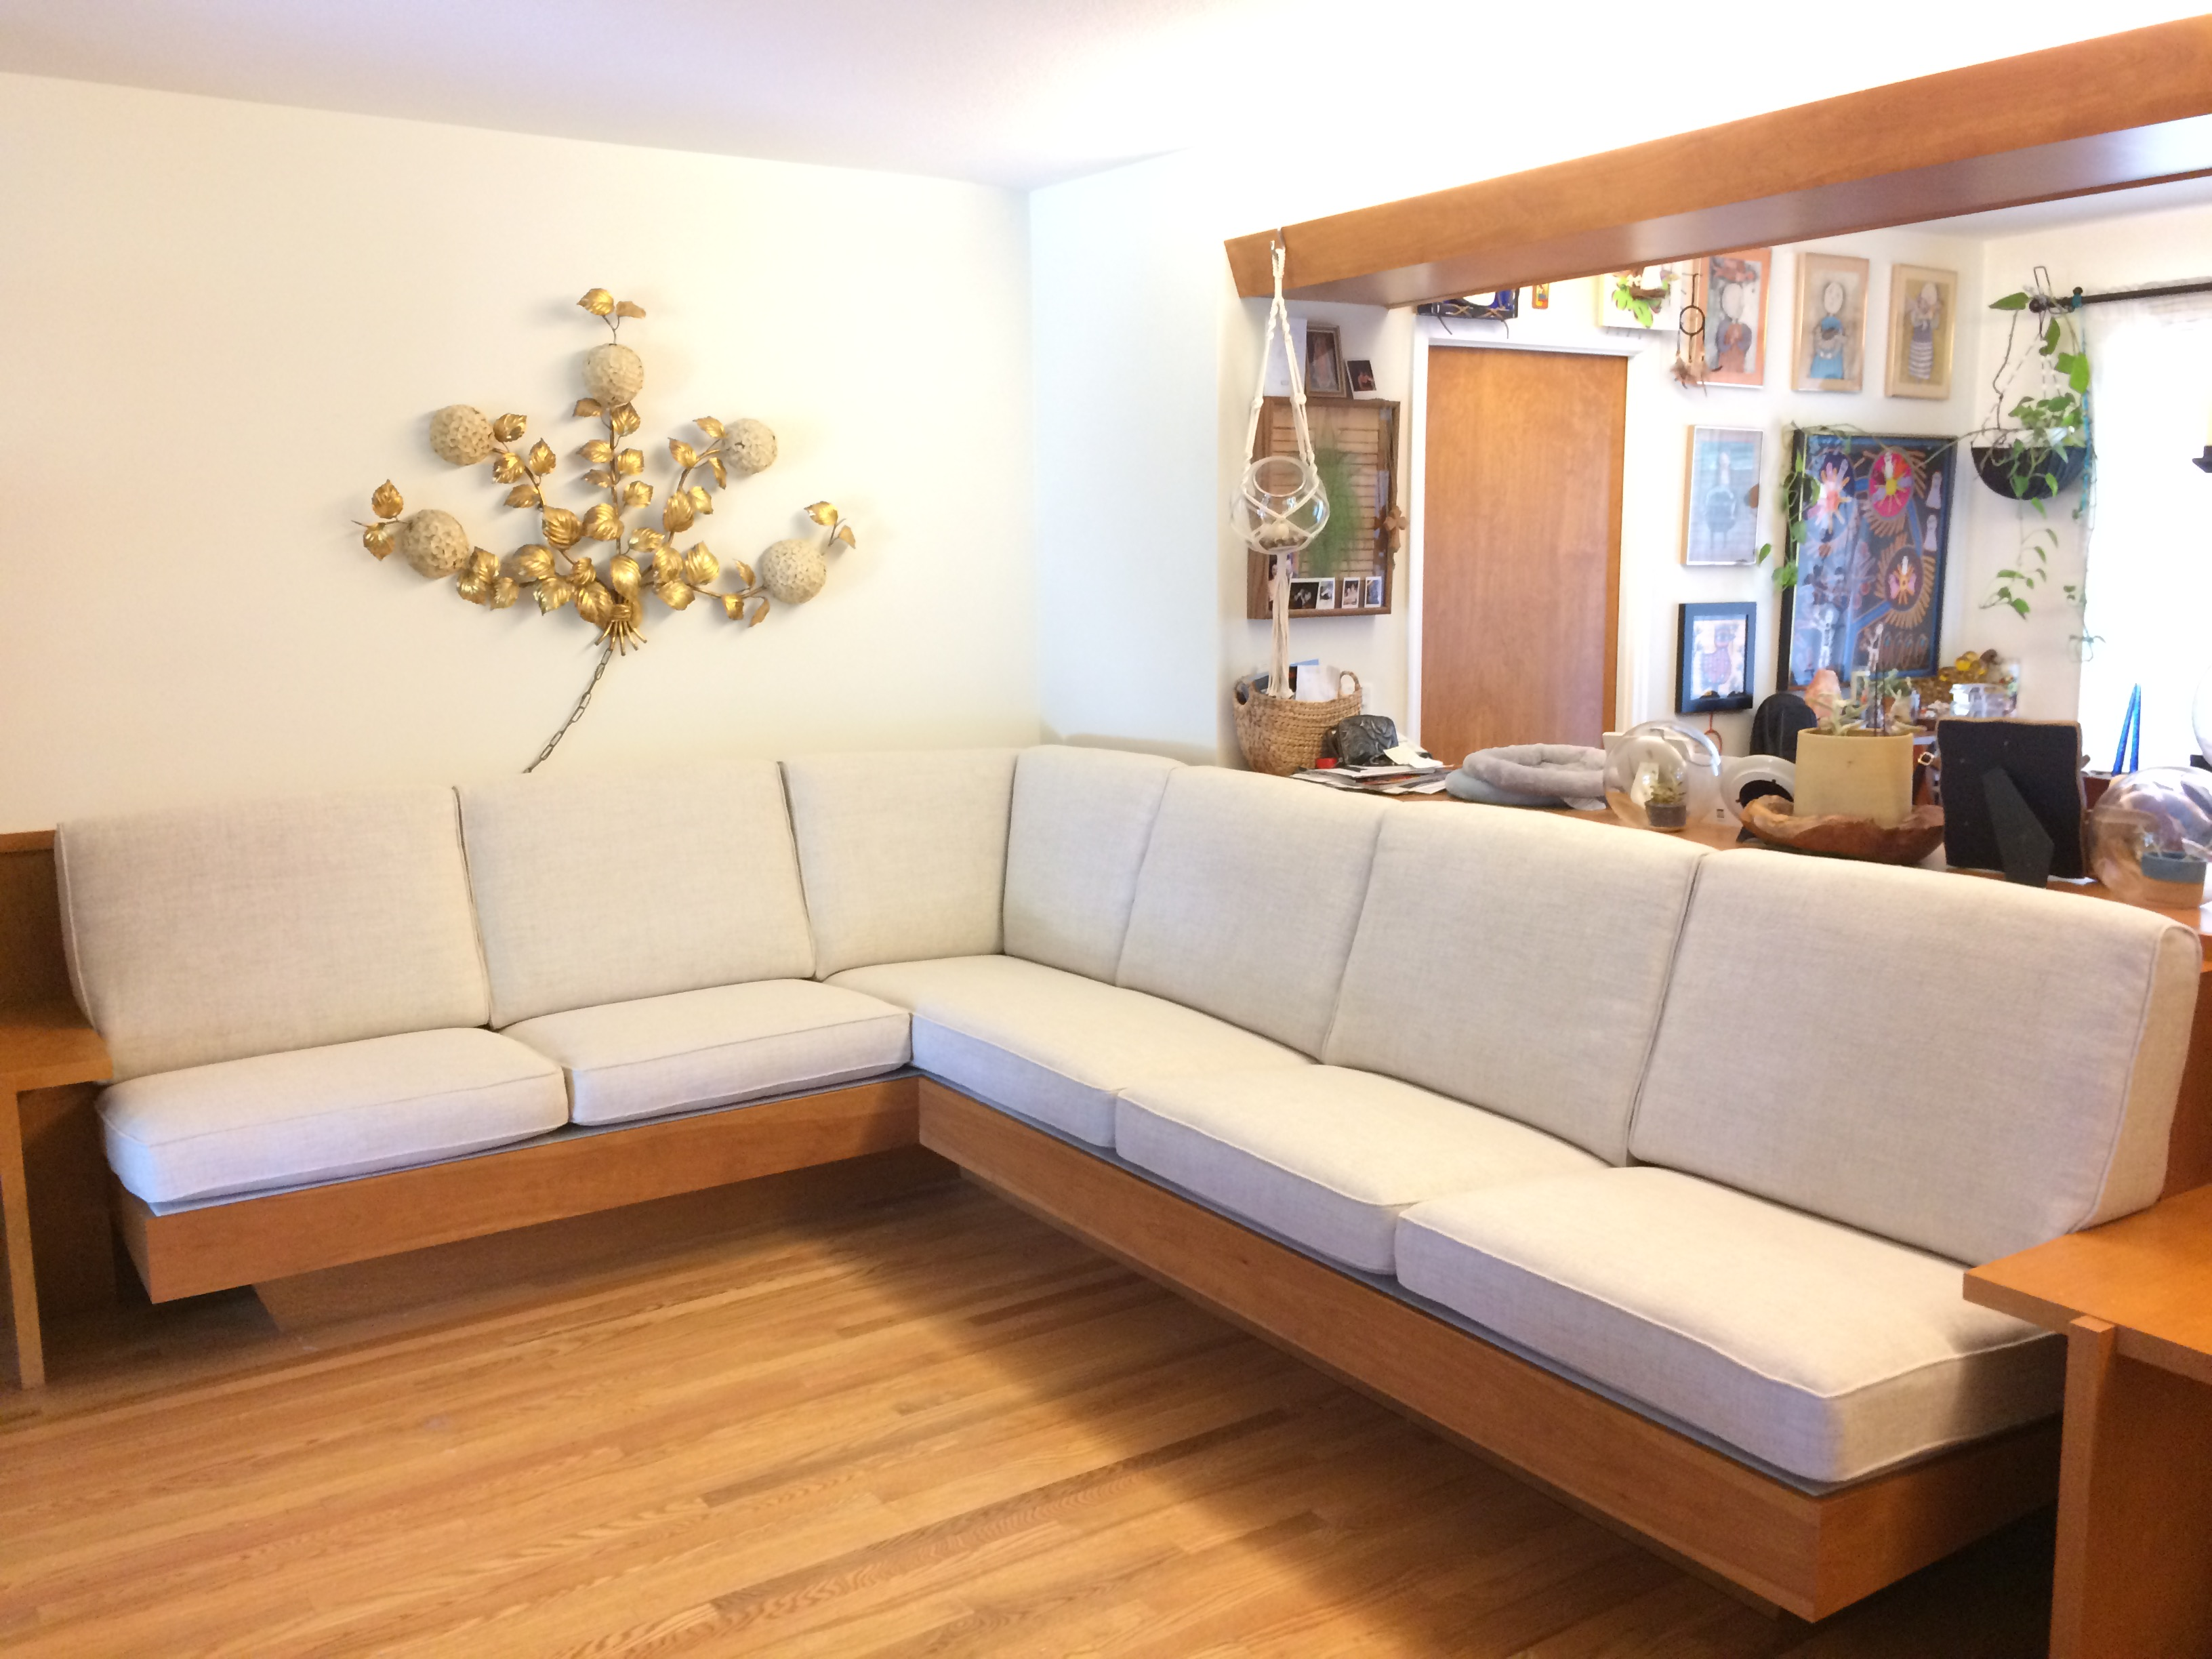 Built In Sectional Sofa 10 X 8 Gq Interior Handcrafted Furniture